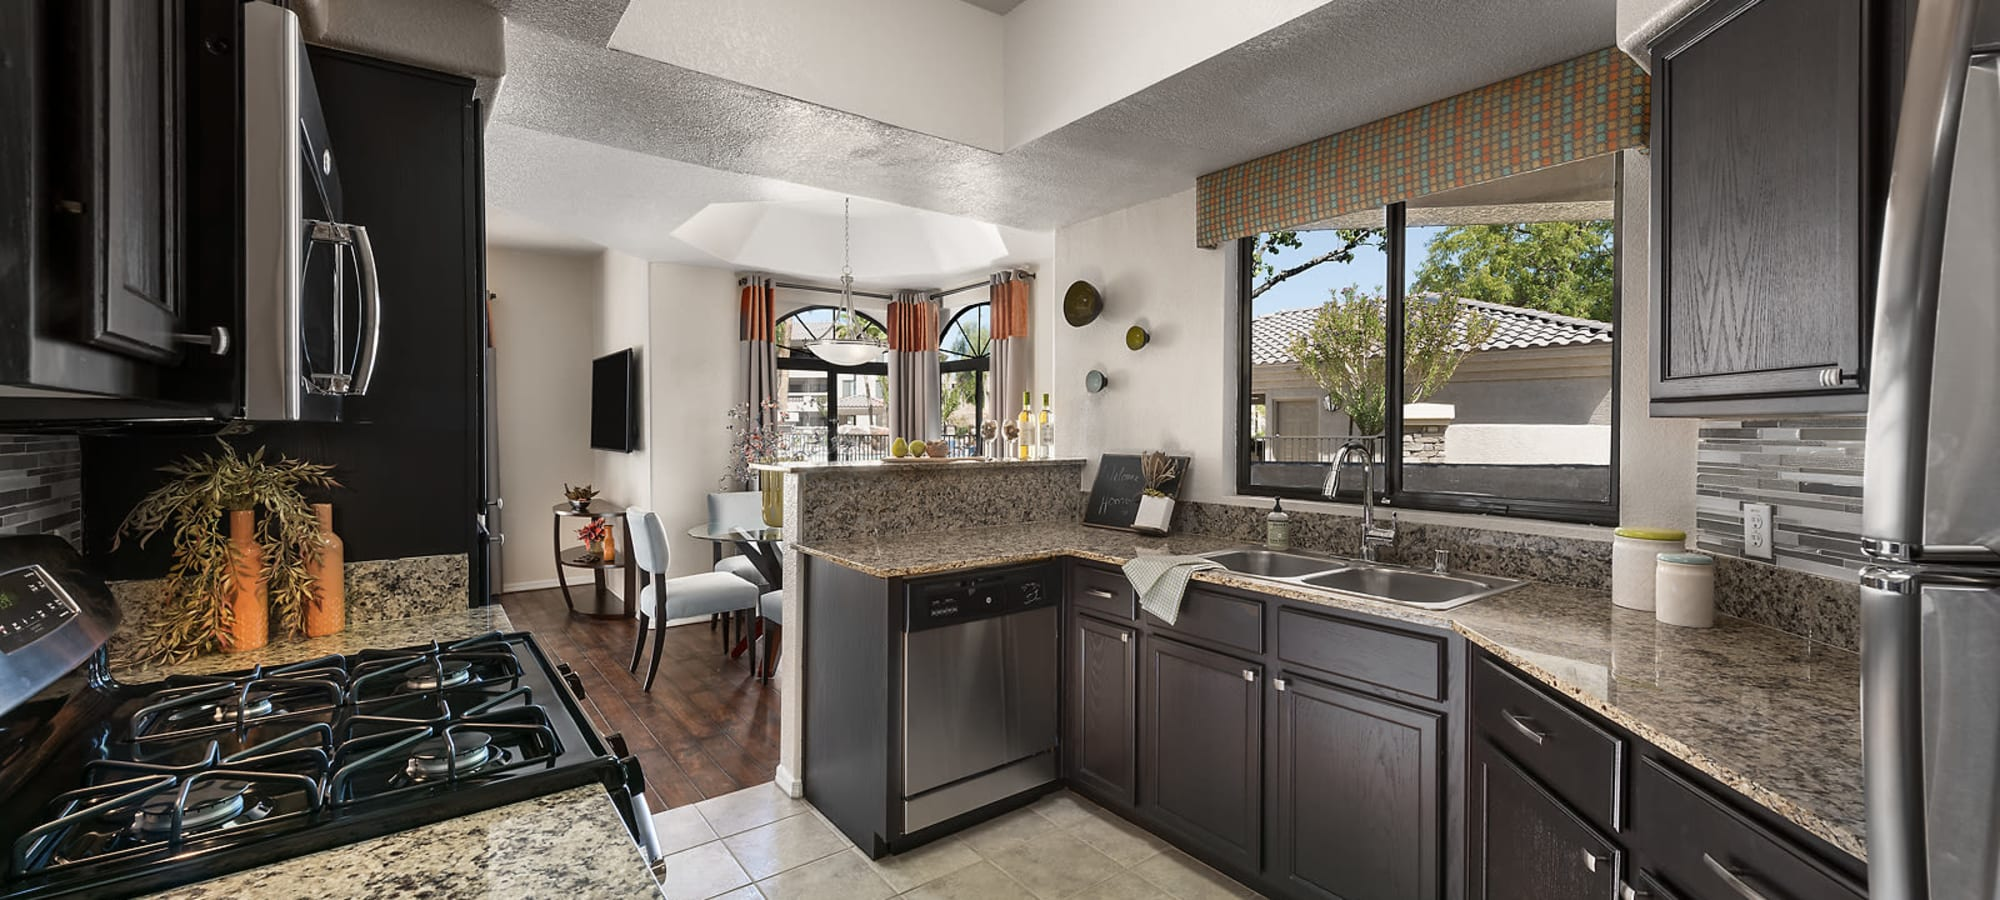 Gorgeous upgraded kitchen with granite and stainless steel appliances in a model home at San Pedregal in Phoenix, Arizona